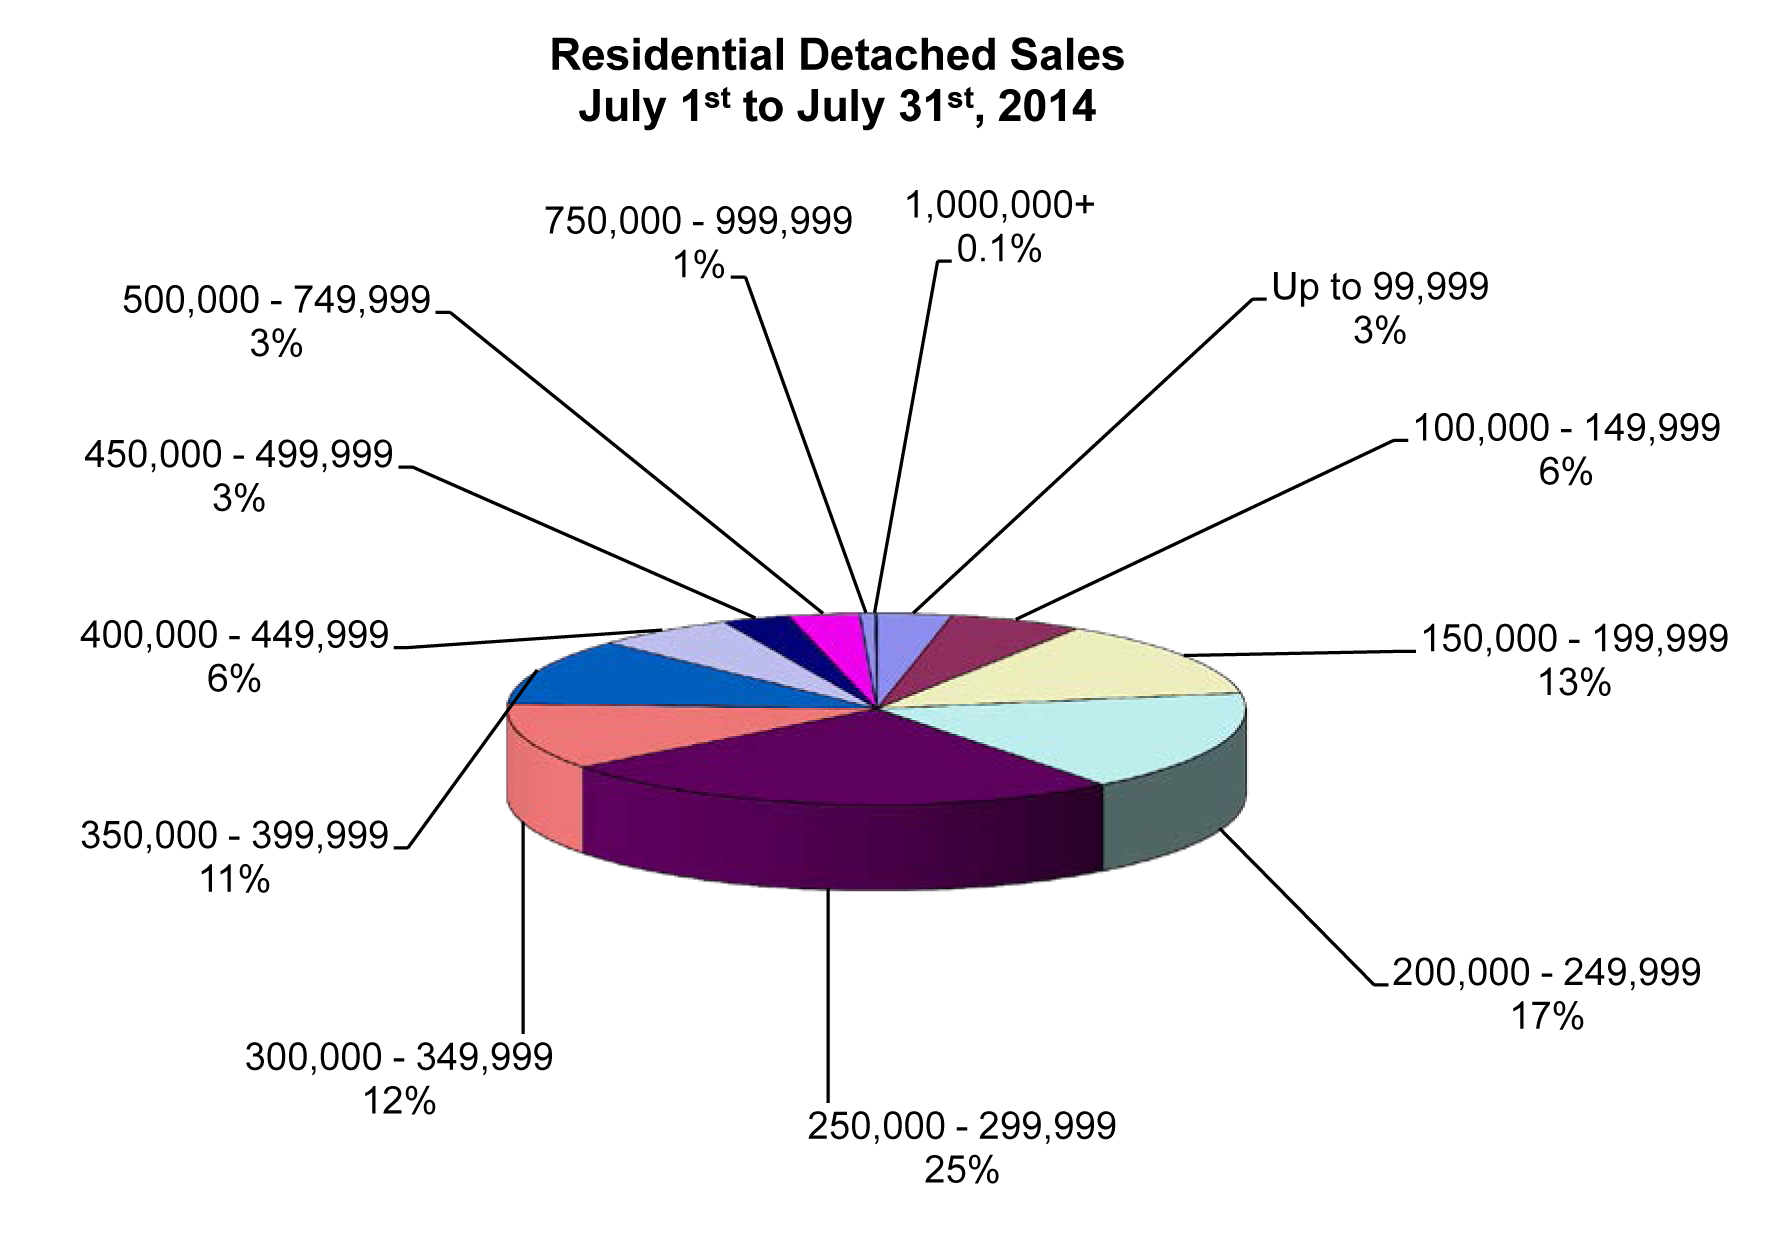 RD Sales Pie Chart July 2014